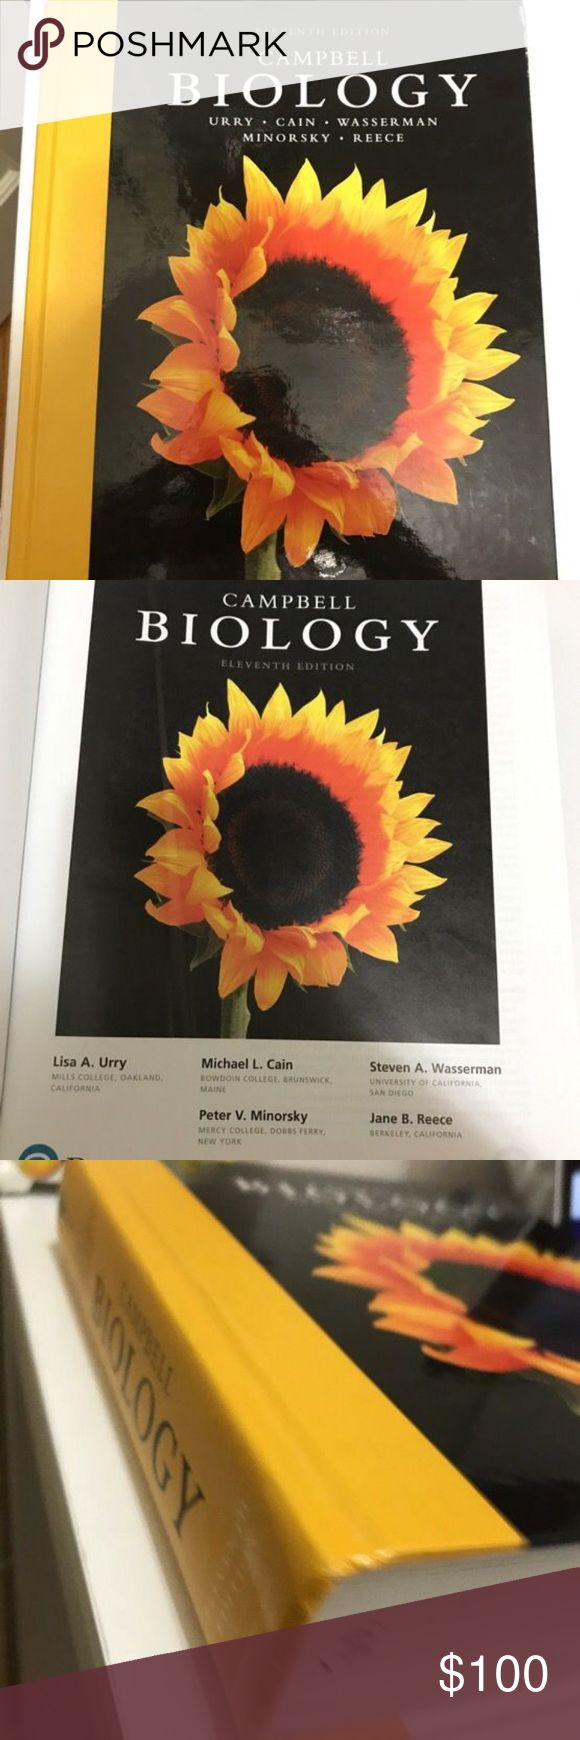 Biology college textbook Campbell biology textbook eleventh edition. Suitable for all biology classes at the college level. Most university requires this science book you won't find this book for sale for under 100$ even on amazon . So I am firm on the price. I have multiple college text books for sale like organic chemistry and genetics and other medical terminology books for medical school students Other